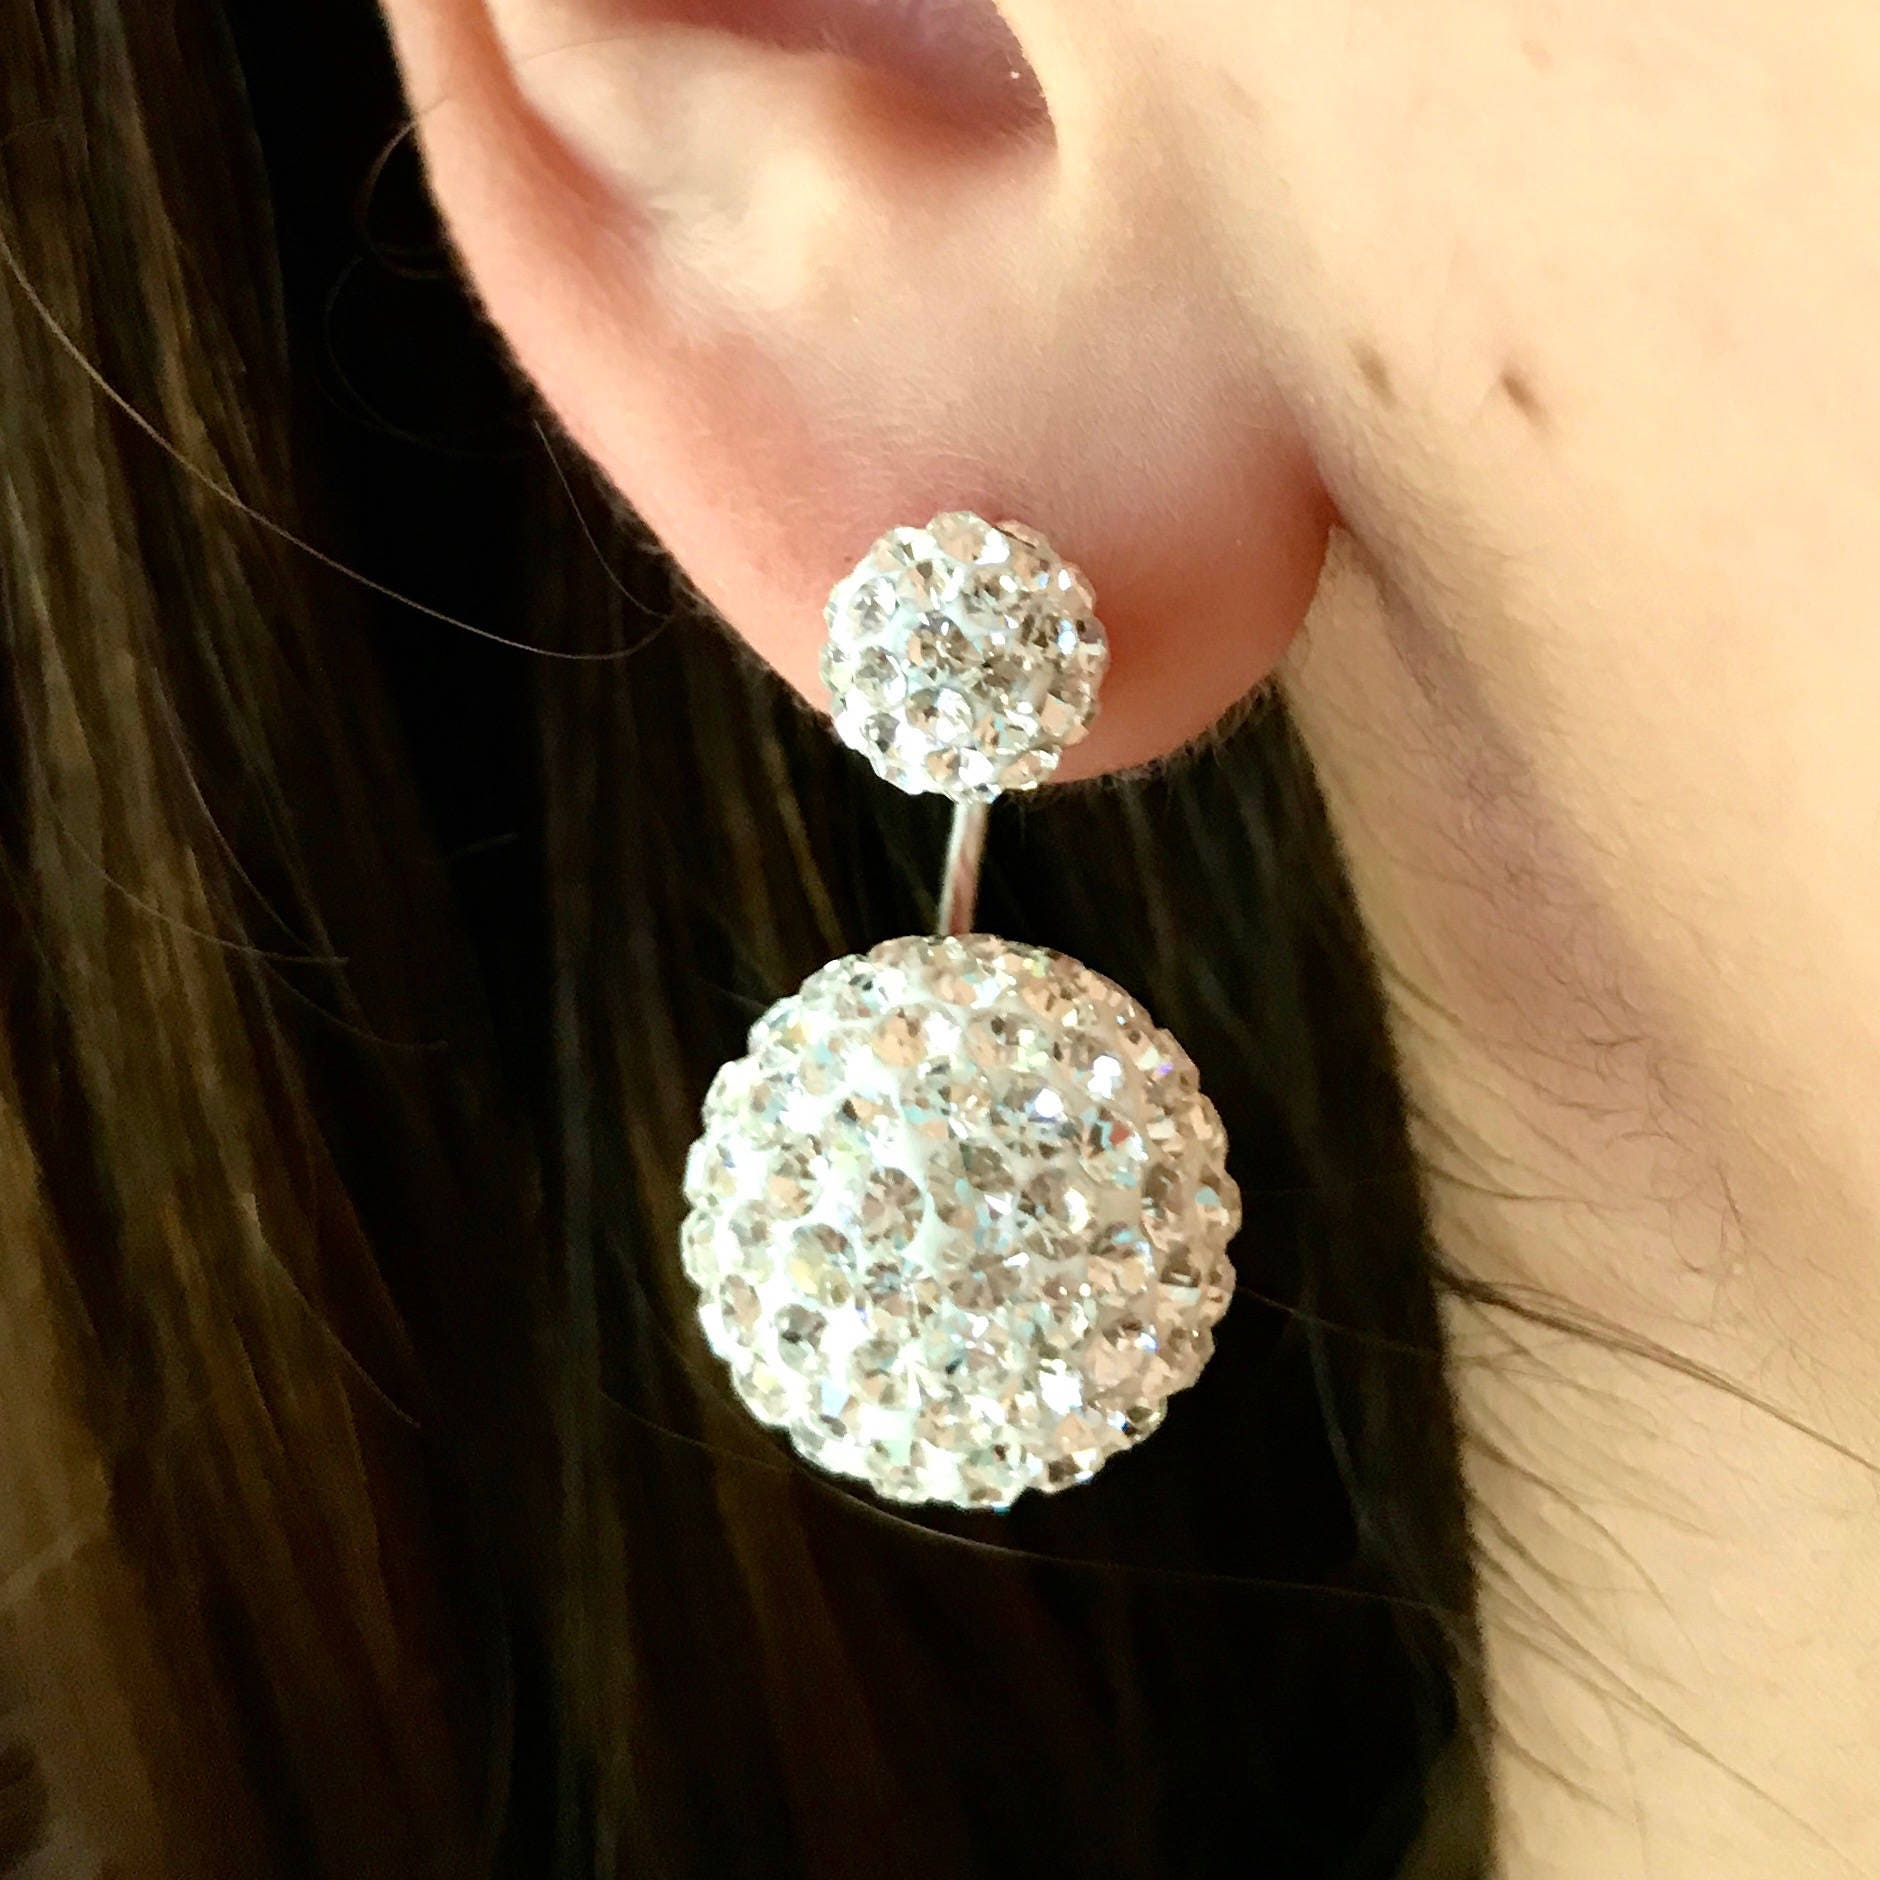 stud of katespade on and pin earrings jewel bling such sparkly pretty spade clusters gems kate